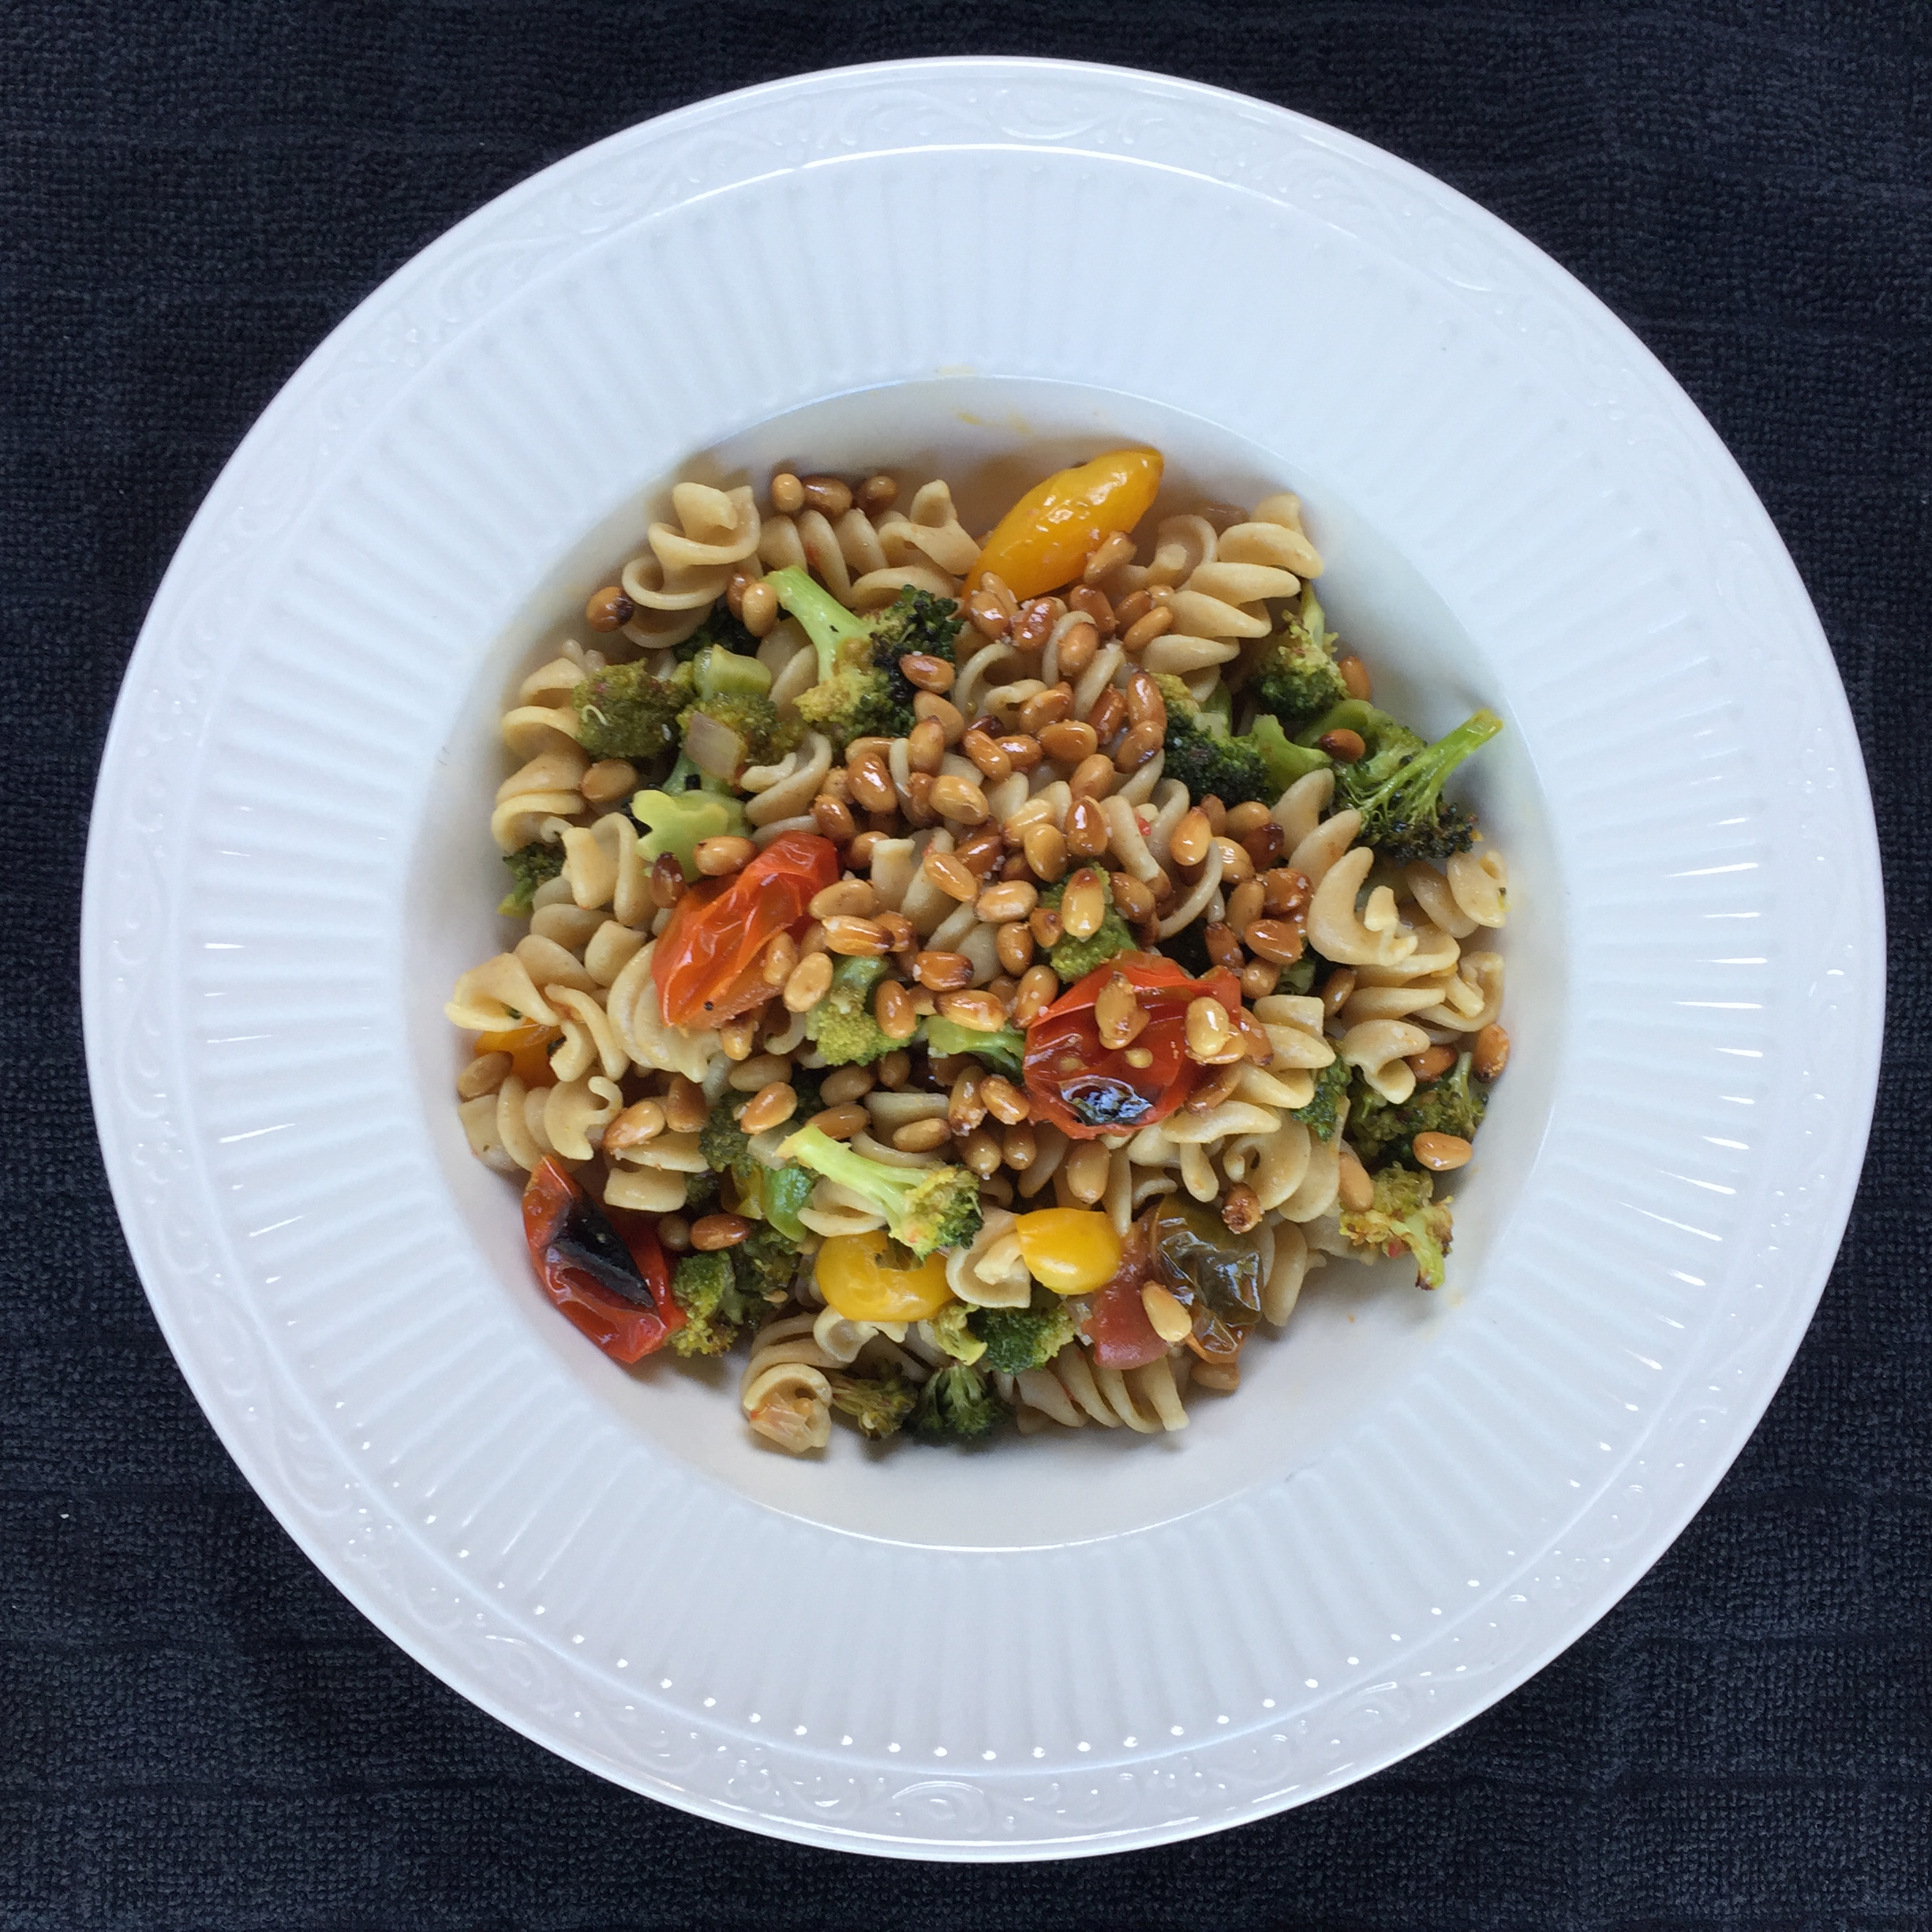 Menu Plan Results for Whole wheat pasta with roasted veggies and pine nuts